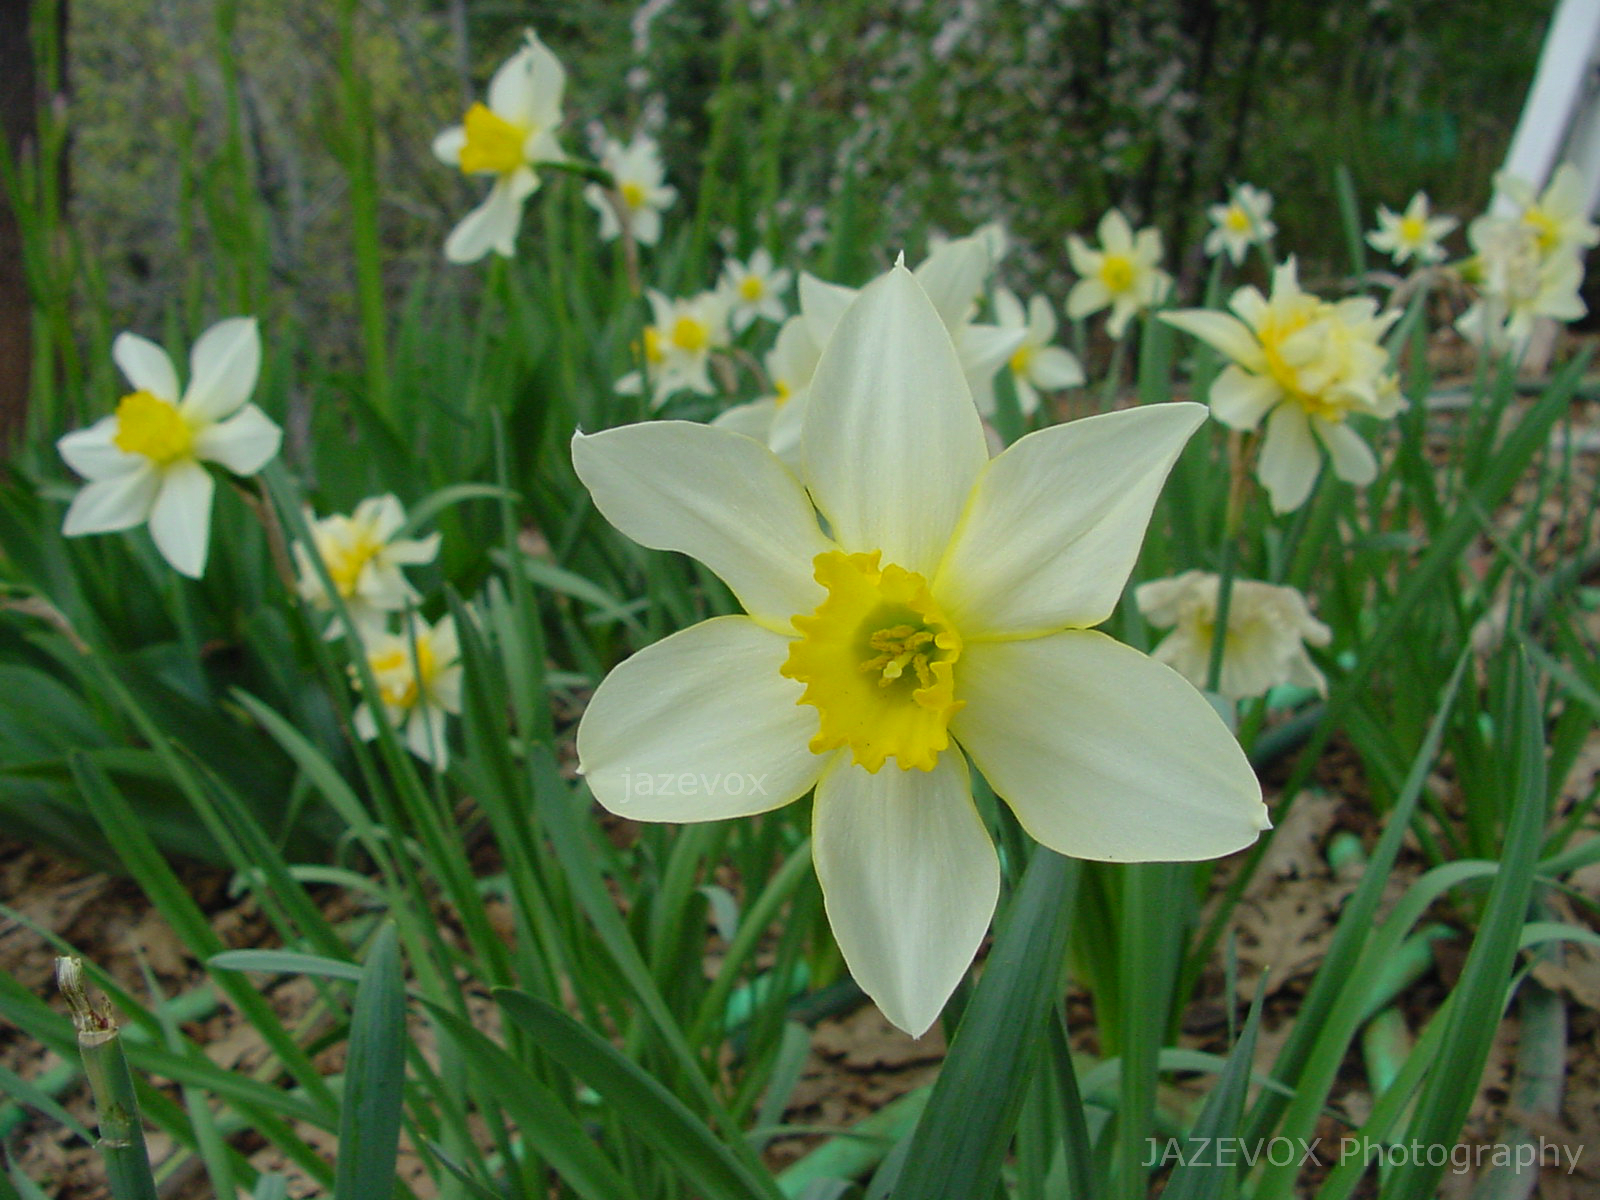 gardeners land yellow daffodil flowers in the spring time